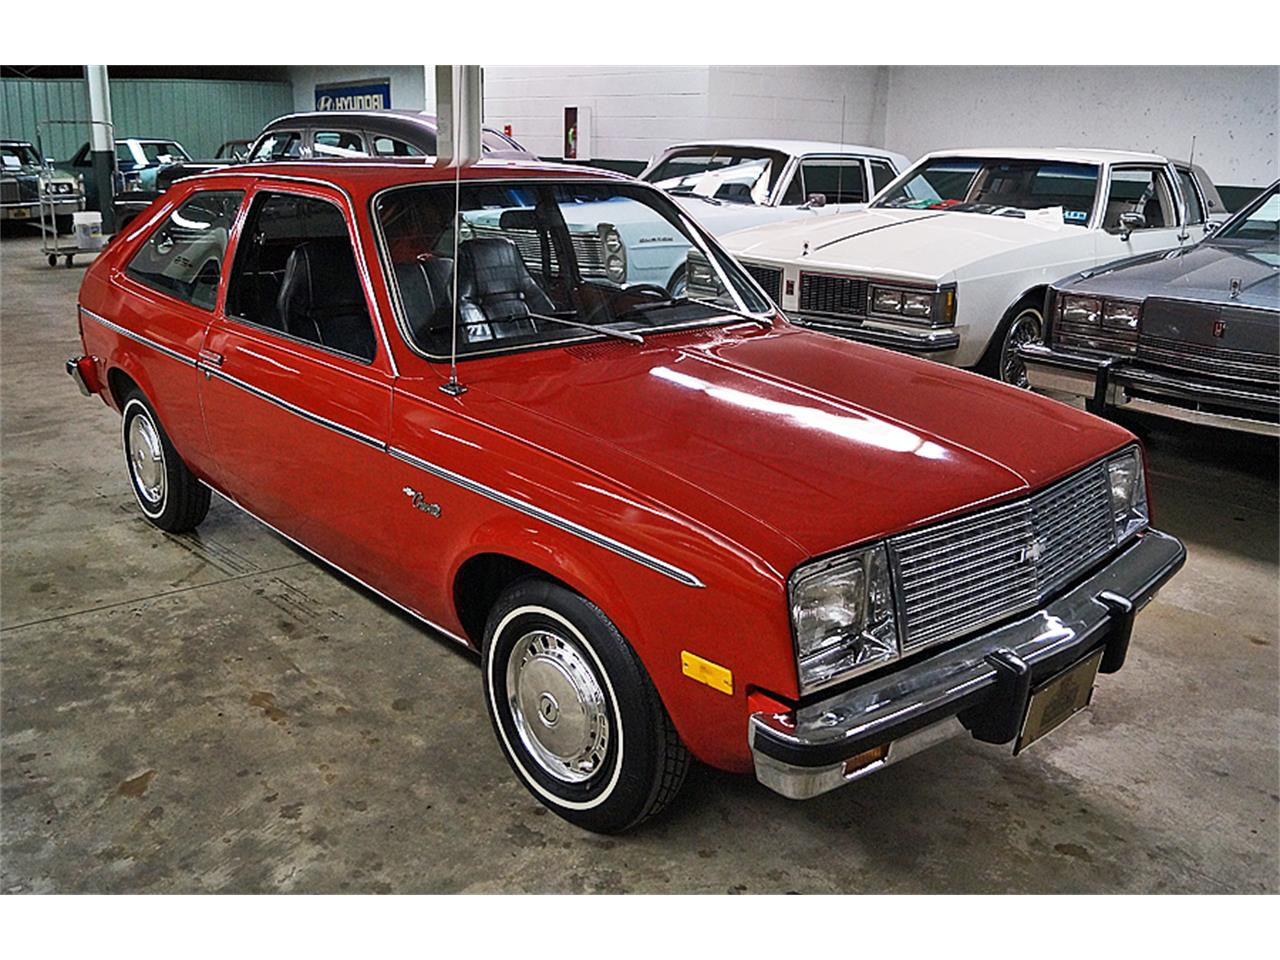 1980 chevrolet chevette for sale classiccars com cc 964806 1980 chevrolet chevette for sale